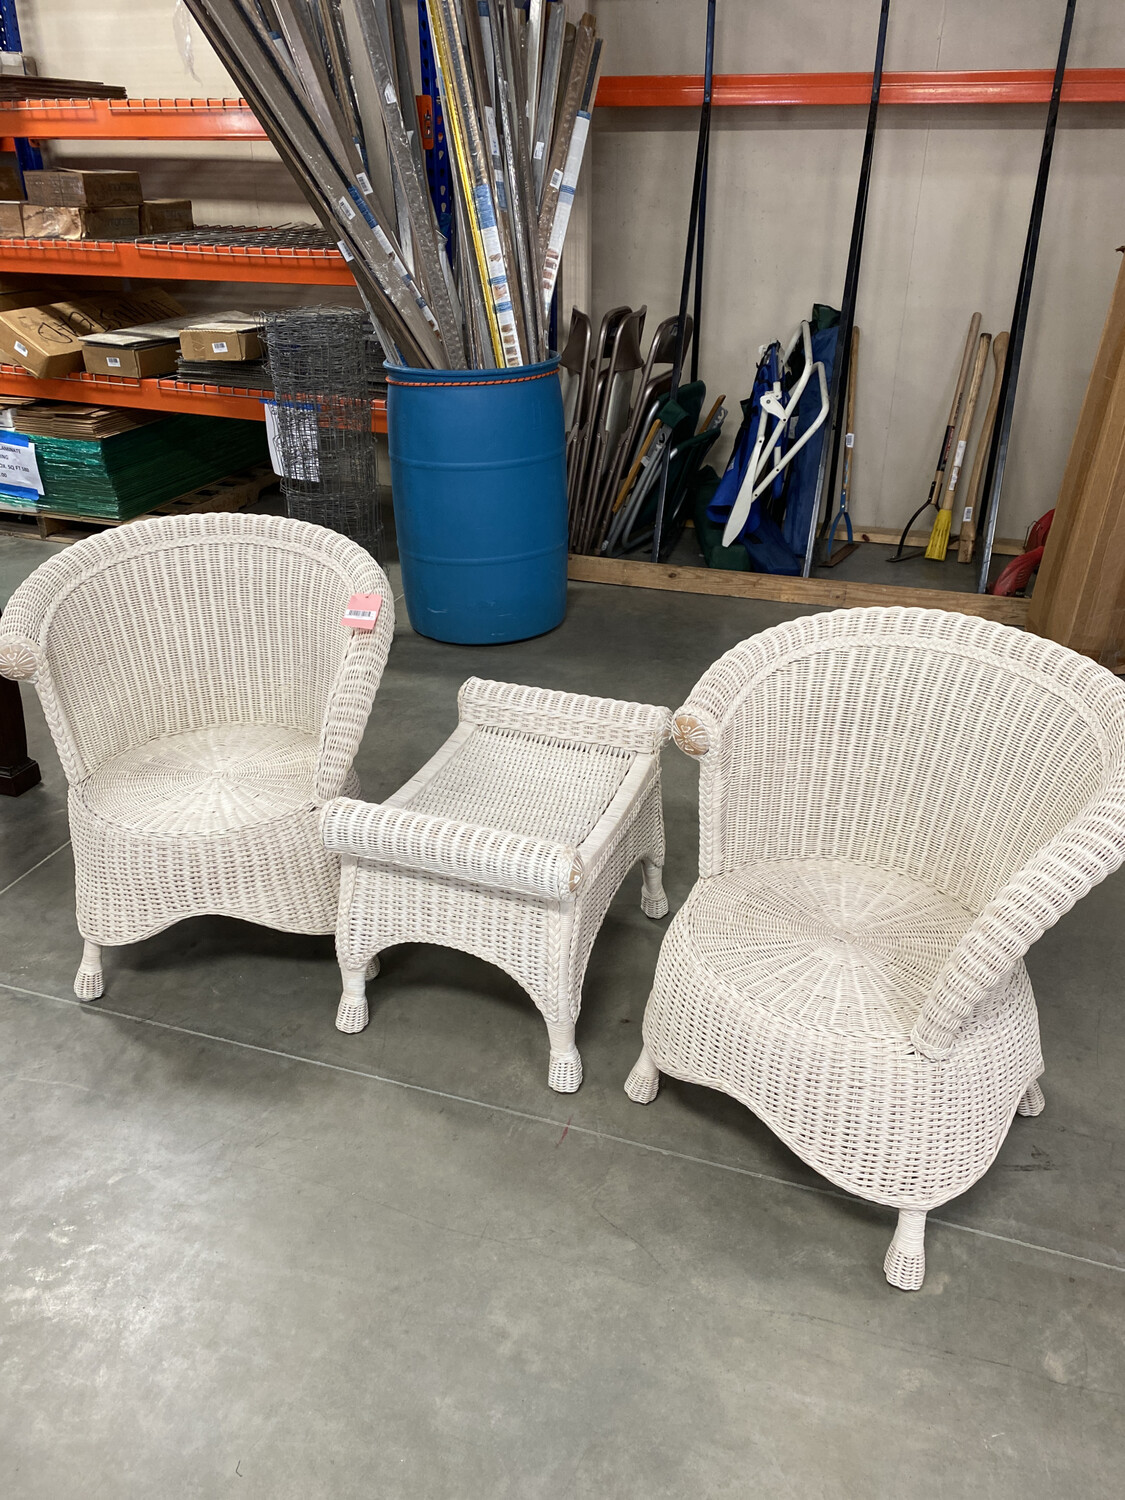 2 WICKER CHAIRS ONE OTTOMAN